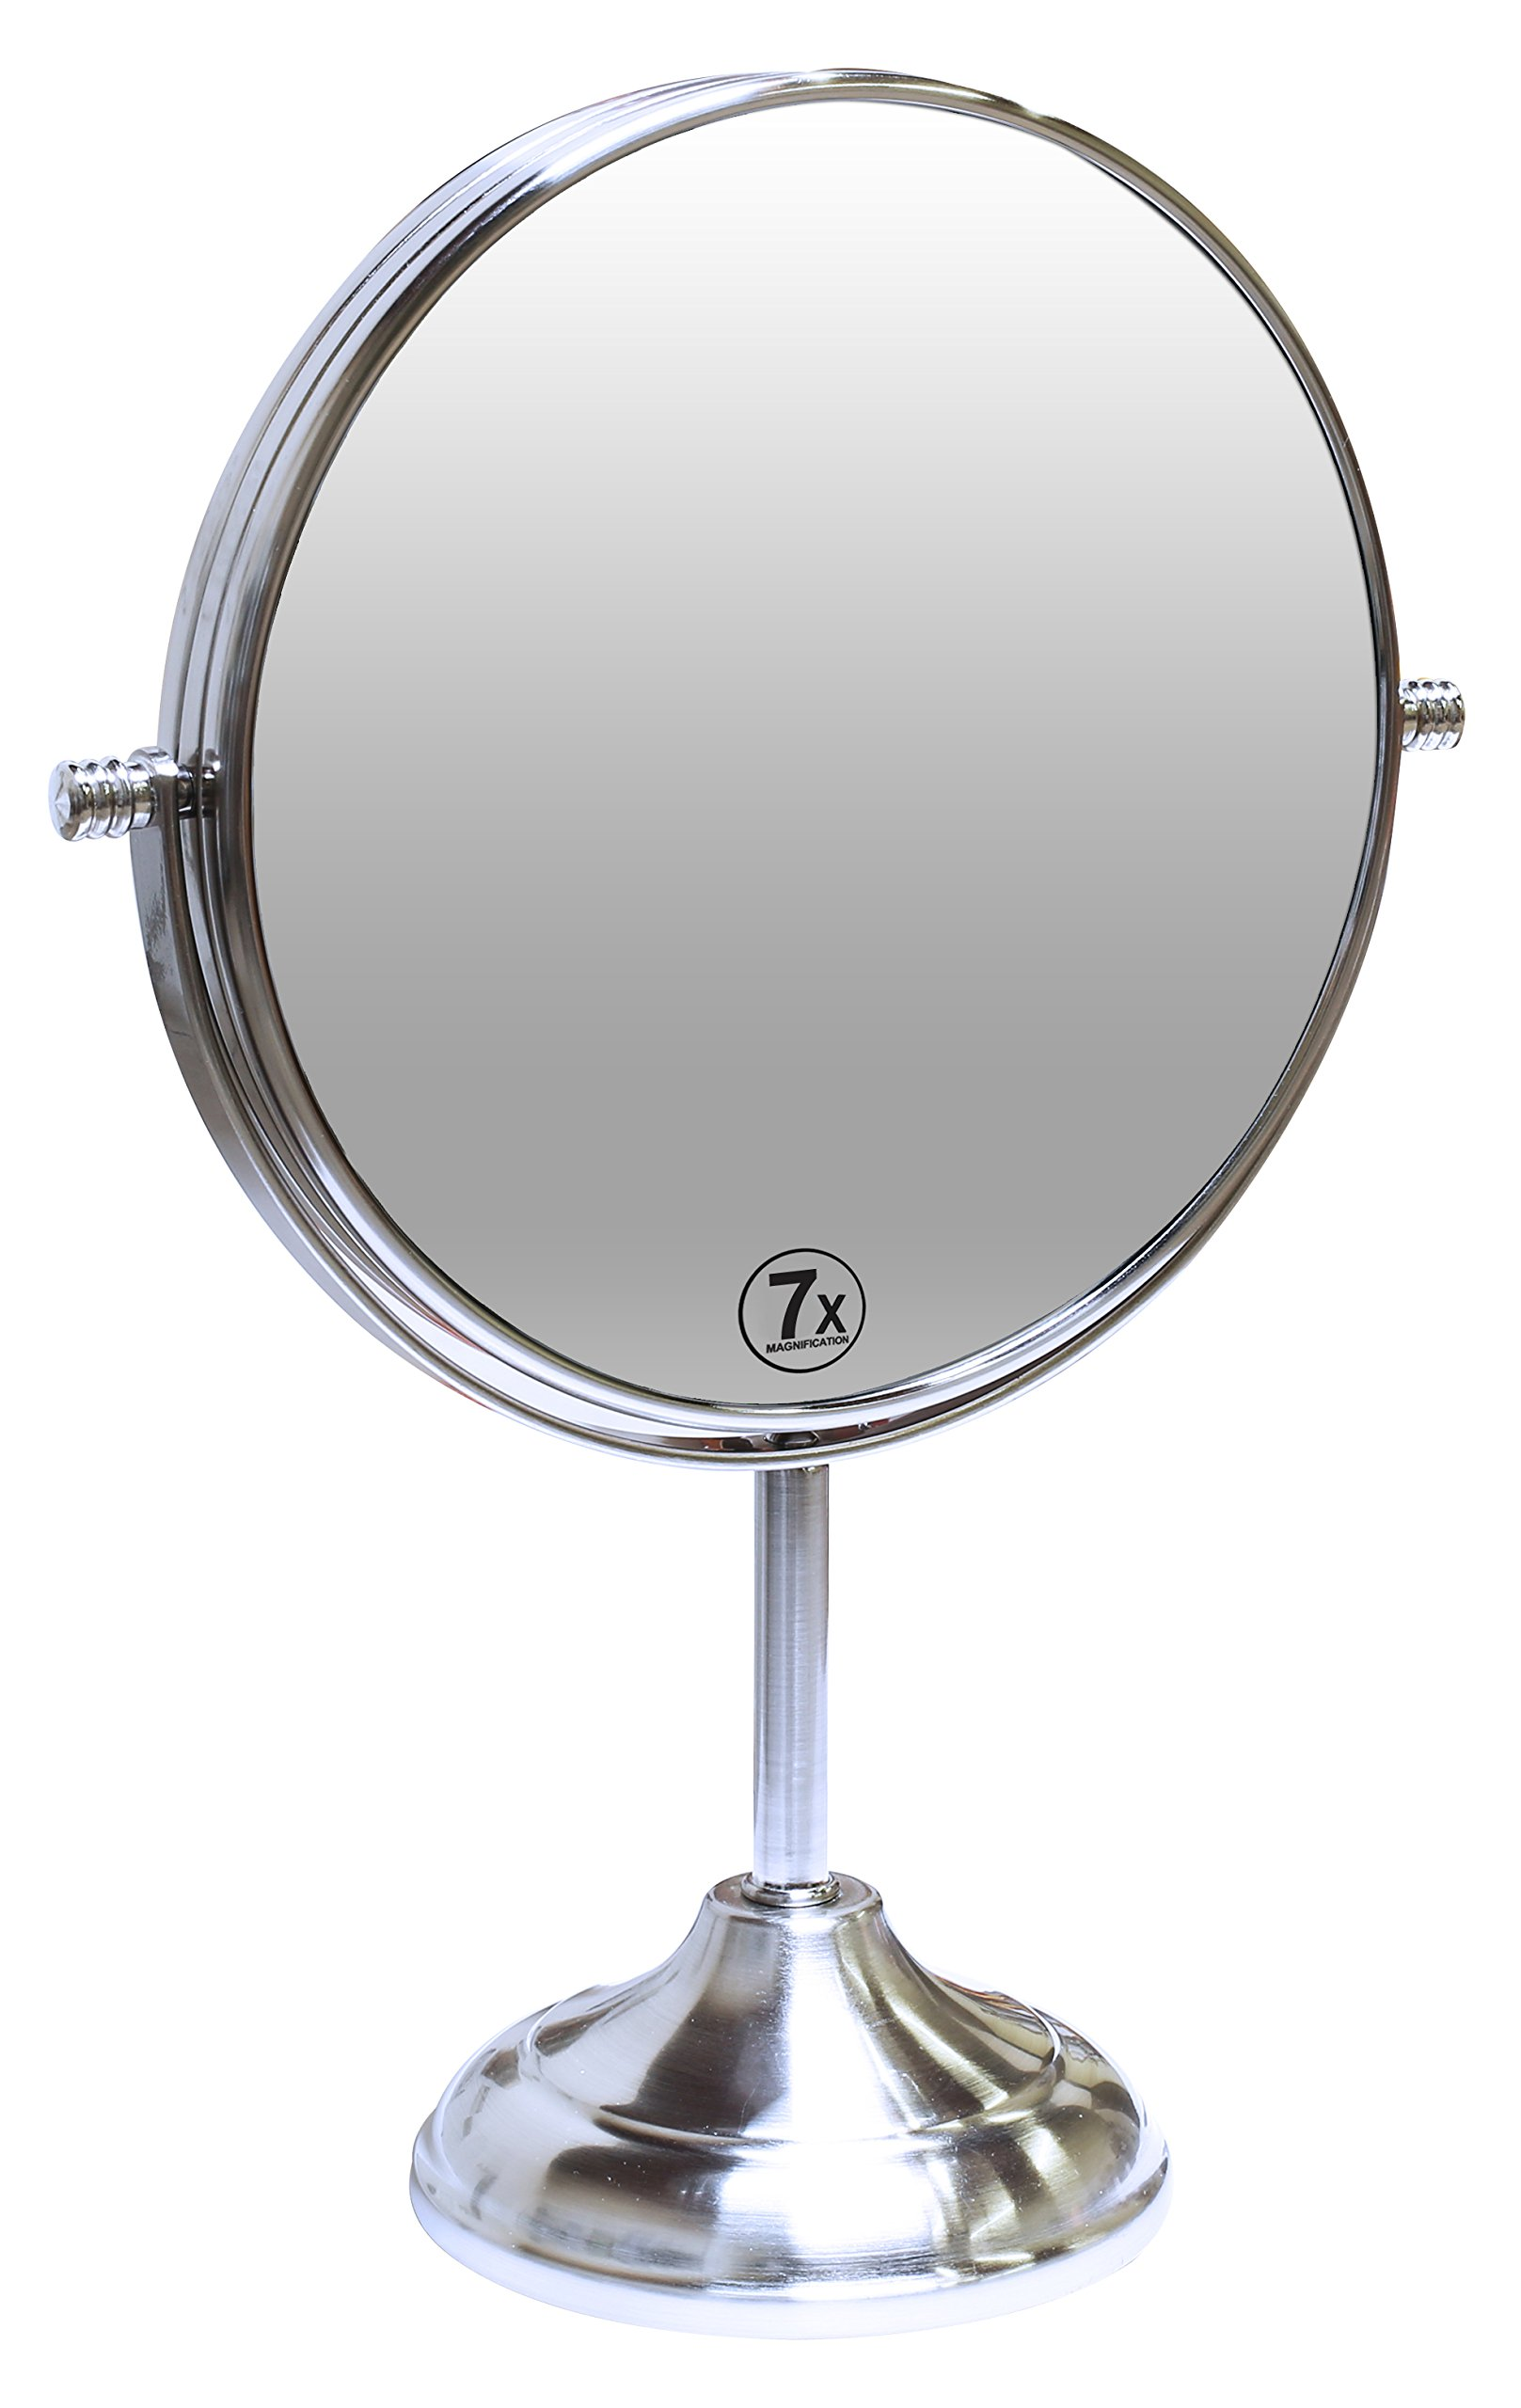 Decobros 8-inch LARGE Tabletop Two-sided Swivel Vanity Mirror with 7x Magnification, 13-inch Height by Deco Brothers